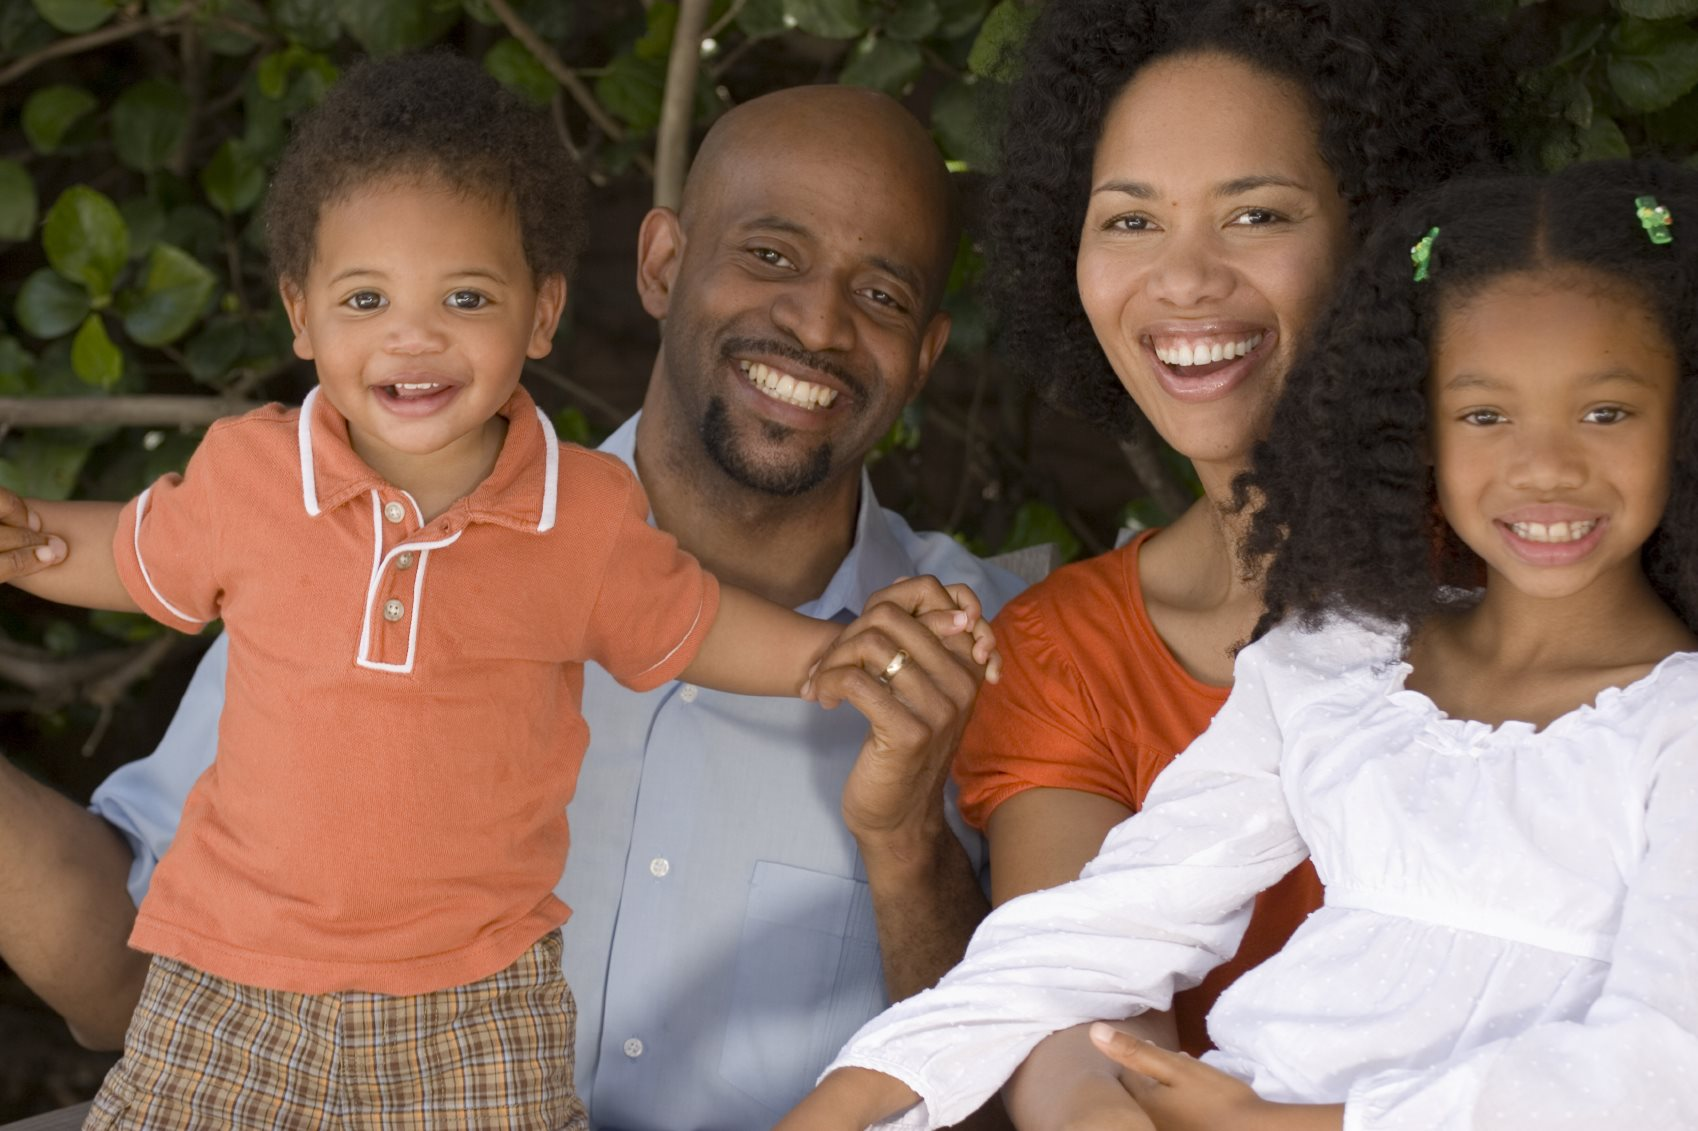 traditional american family Today, the best place to find a traditional, g-rated american family may be in an immigrant community asian-american families, in particular, are exceptionally stable.